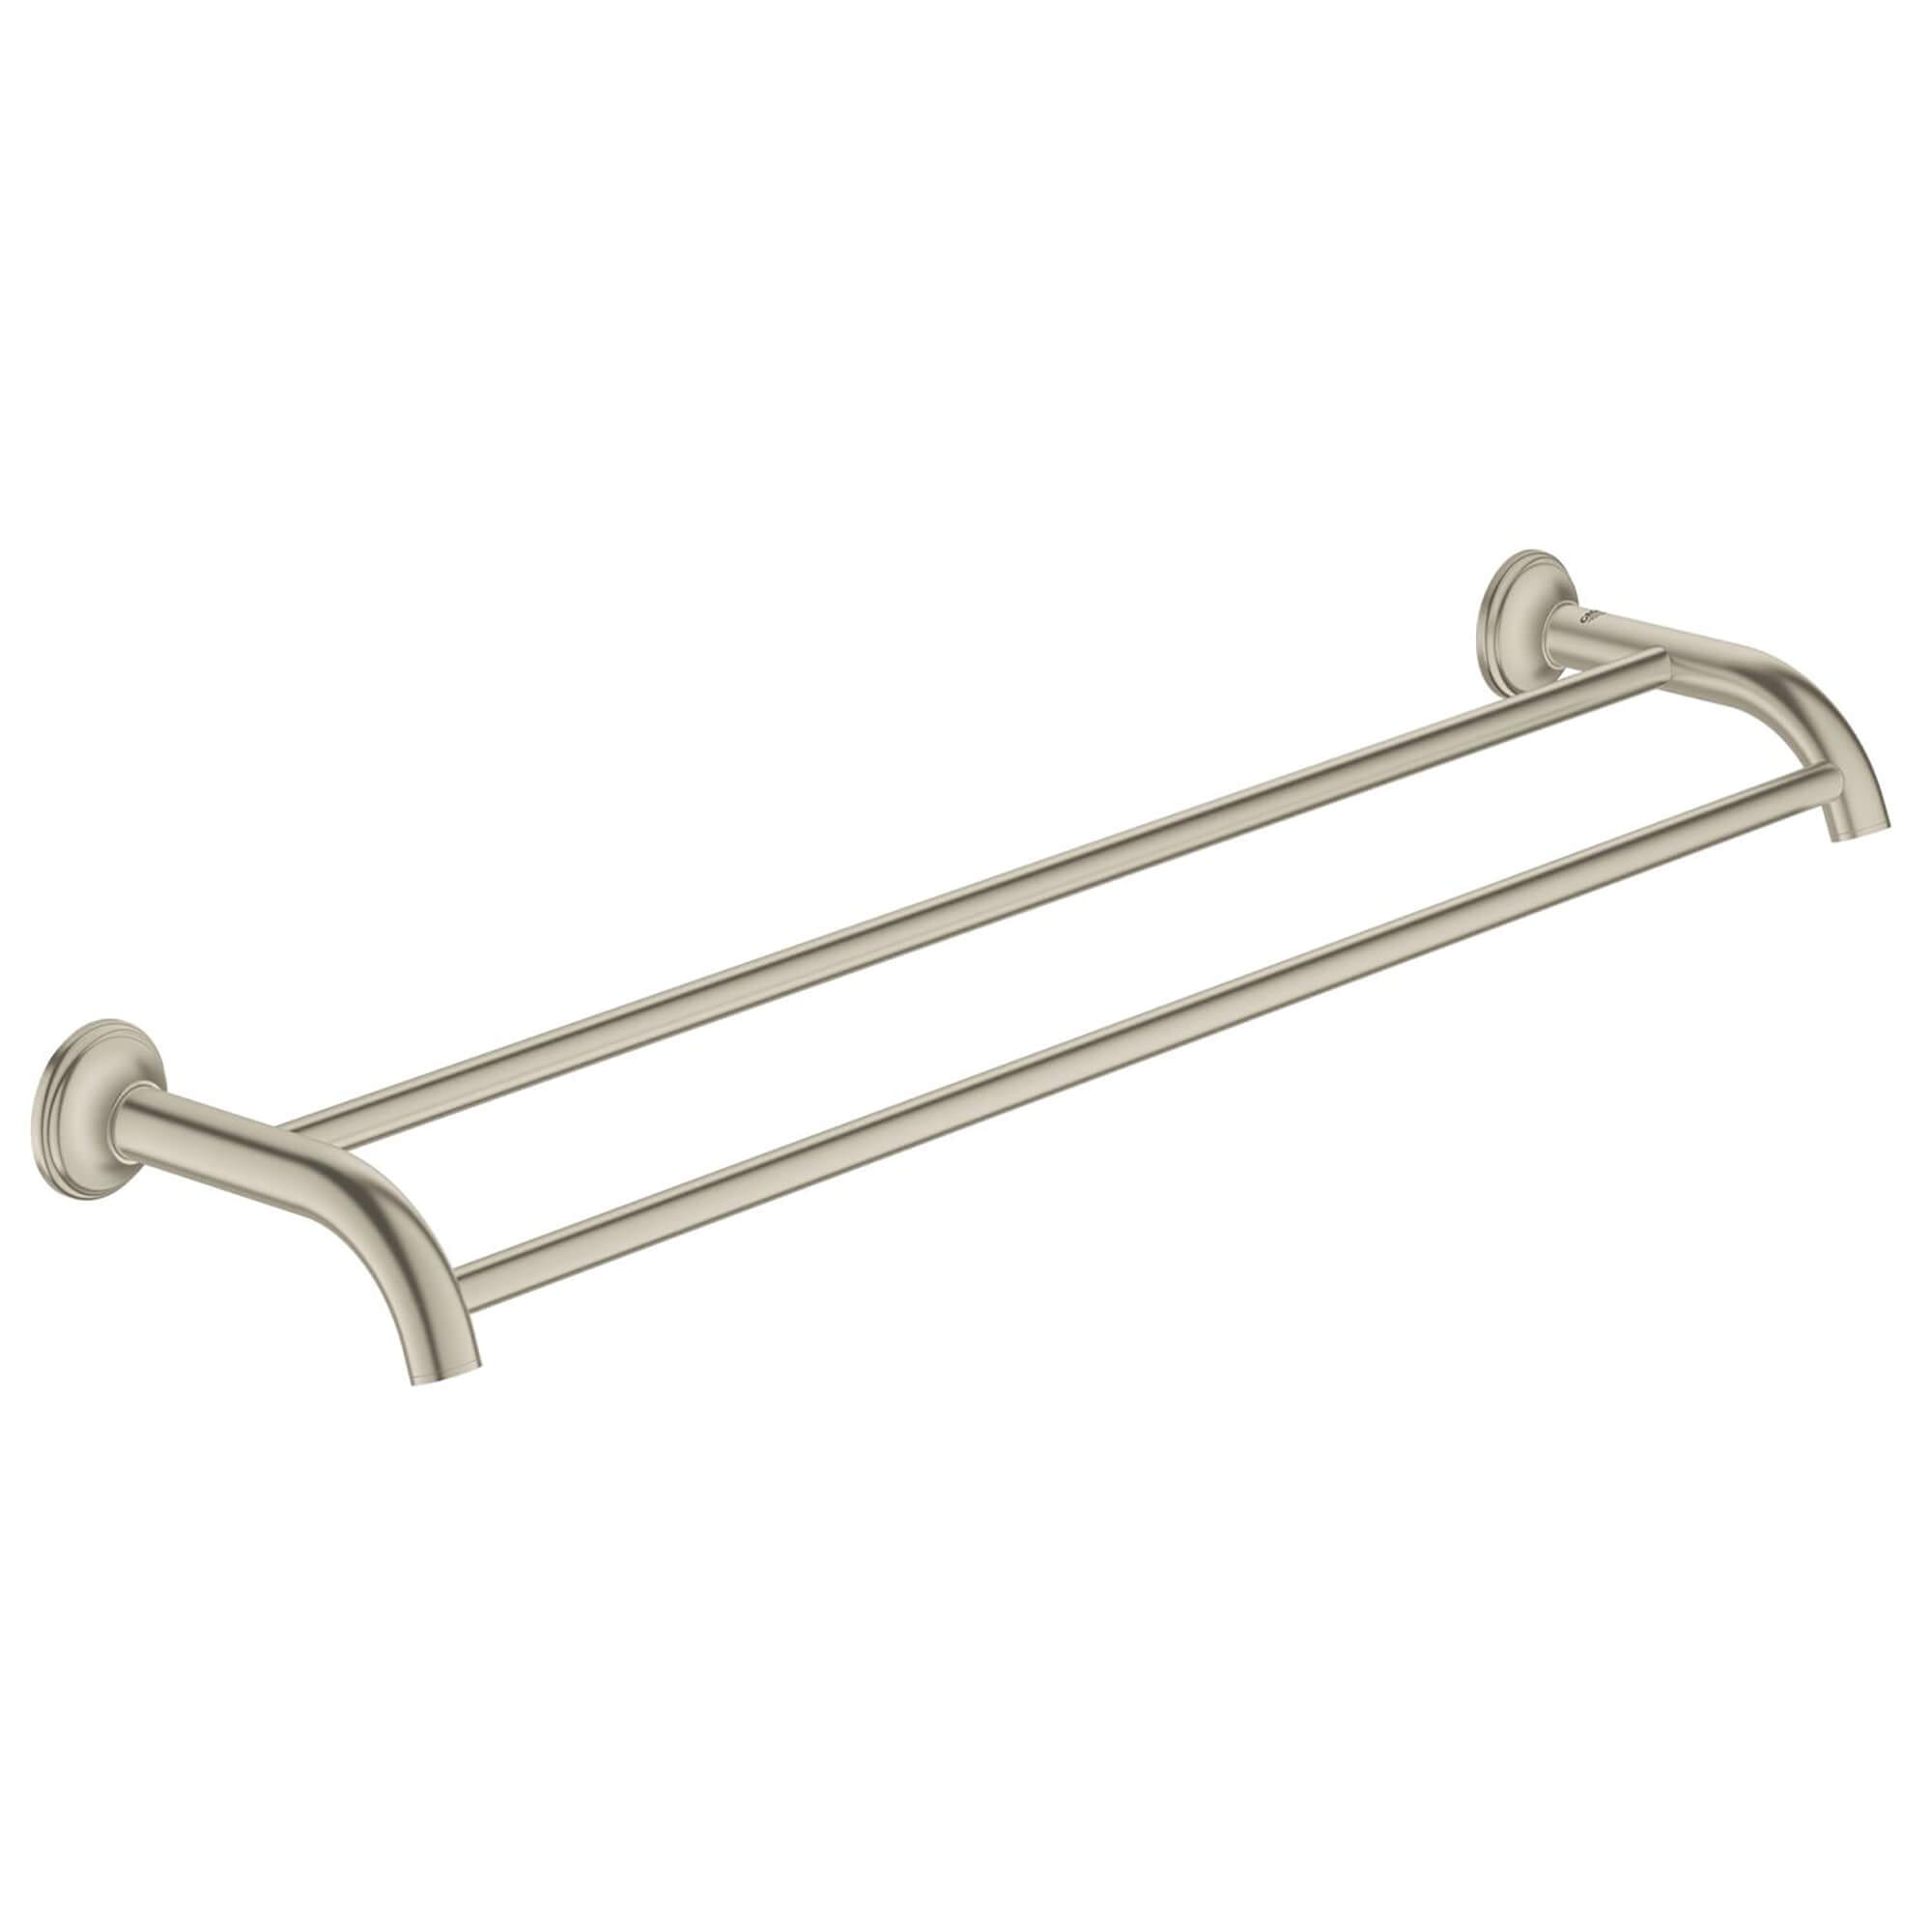 Double barre porte serviettes GROHE BRUSHED NICKEL